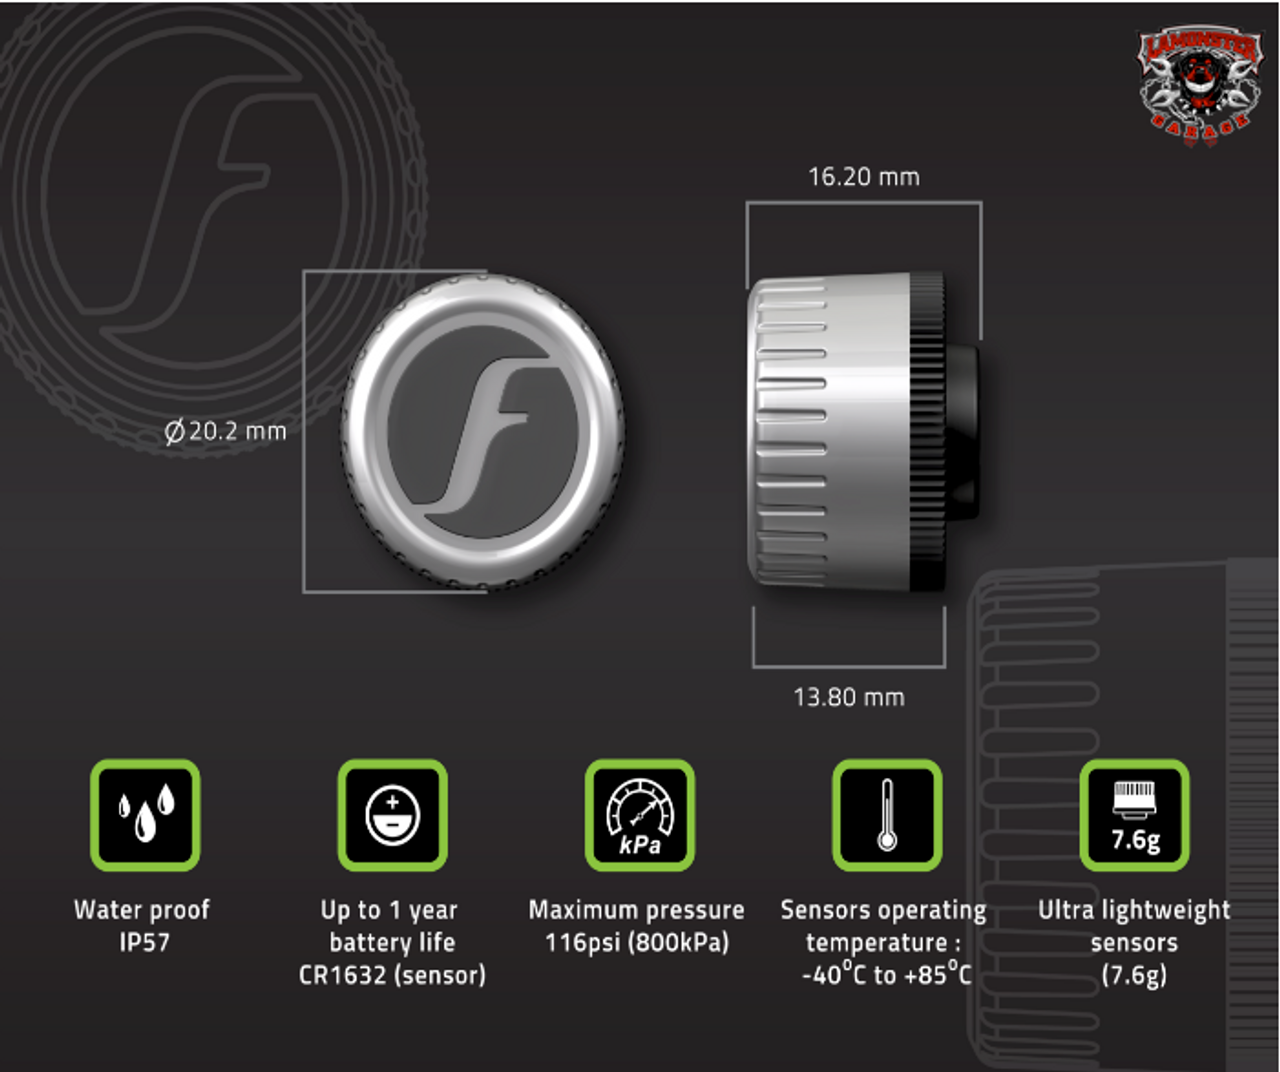 FOBO Bike 2 For Trike sensor (TM1802) Specifications      Bluetooth: v5.0  Transmit Conducted Power: +5.0dBm (sensor)  Receiver Sensitivity: Conducted Sensitivity -97dBm @ 0.1%BER  Antenna Return Loss: Typical -9dB  Operating Frequency: 2.402~2.480 GHz  Battery Type: CR1632 (sensor). Operating life up to 1 year. (NOTE: The battery operating life varies according to usage and climate temperature)  Operating Temperature: -40°C to +85°C (sensor), -20°C to +60°C (sensor with common CR1632 batteries)  Weight: 7.6g (sensor –with battery)  Sensor Dimension H x D: 13.8mm x 20.2mm  Maximum Pressure: 800kPa (116psi)  ESD: 8kV air discharge & 4kV direct contact discharge according to CE standard  Operating Humidity: up to 90% non-condensing at 40oC  Dust and Water Proof: IEC60529 compliant to IP57(sensor)  Sensor structural threshold: 100N ball pressure intensity test  Mechanical & Environmental Reliability Testing Standards: IEC 60068-2-2, IEC 60068-2-1, ISO 21750, IEC 60068-2-29, IEC 60068-2-5, IEC 60068-2-32, ISO 15184, ISO 2409, SAE J2657, SAEJ113/13